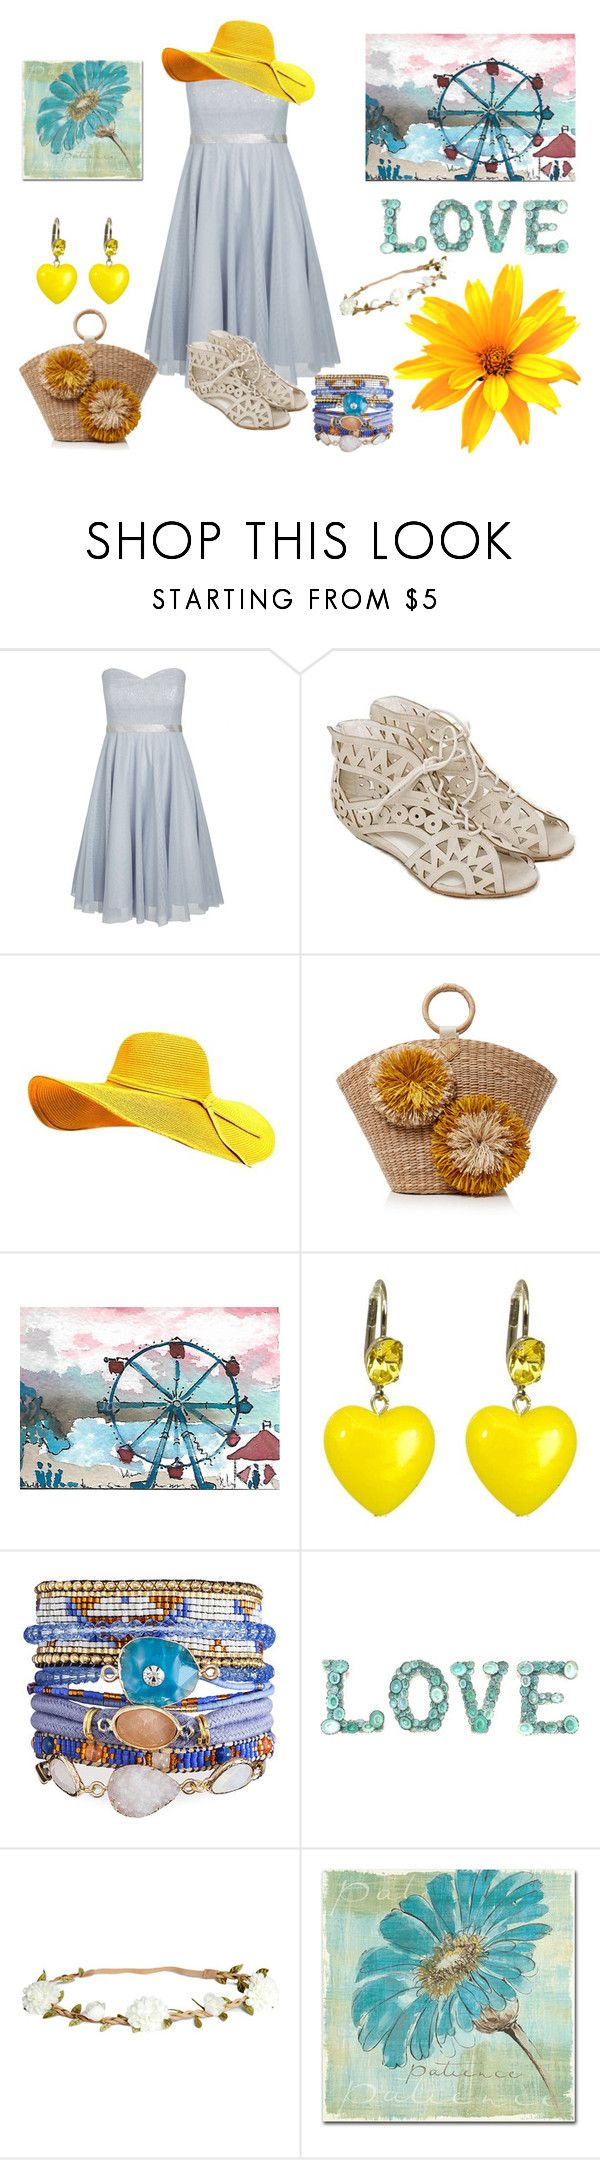 """Yellow & Blue"" by fashion2religion ❤ liked on Polyvore featuring City Chic, Aranáz, Tarina Tarantino, H&M, Trademark Fine Art, Summer, yellow, Blue and plus size dresses"